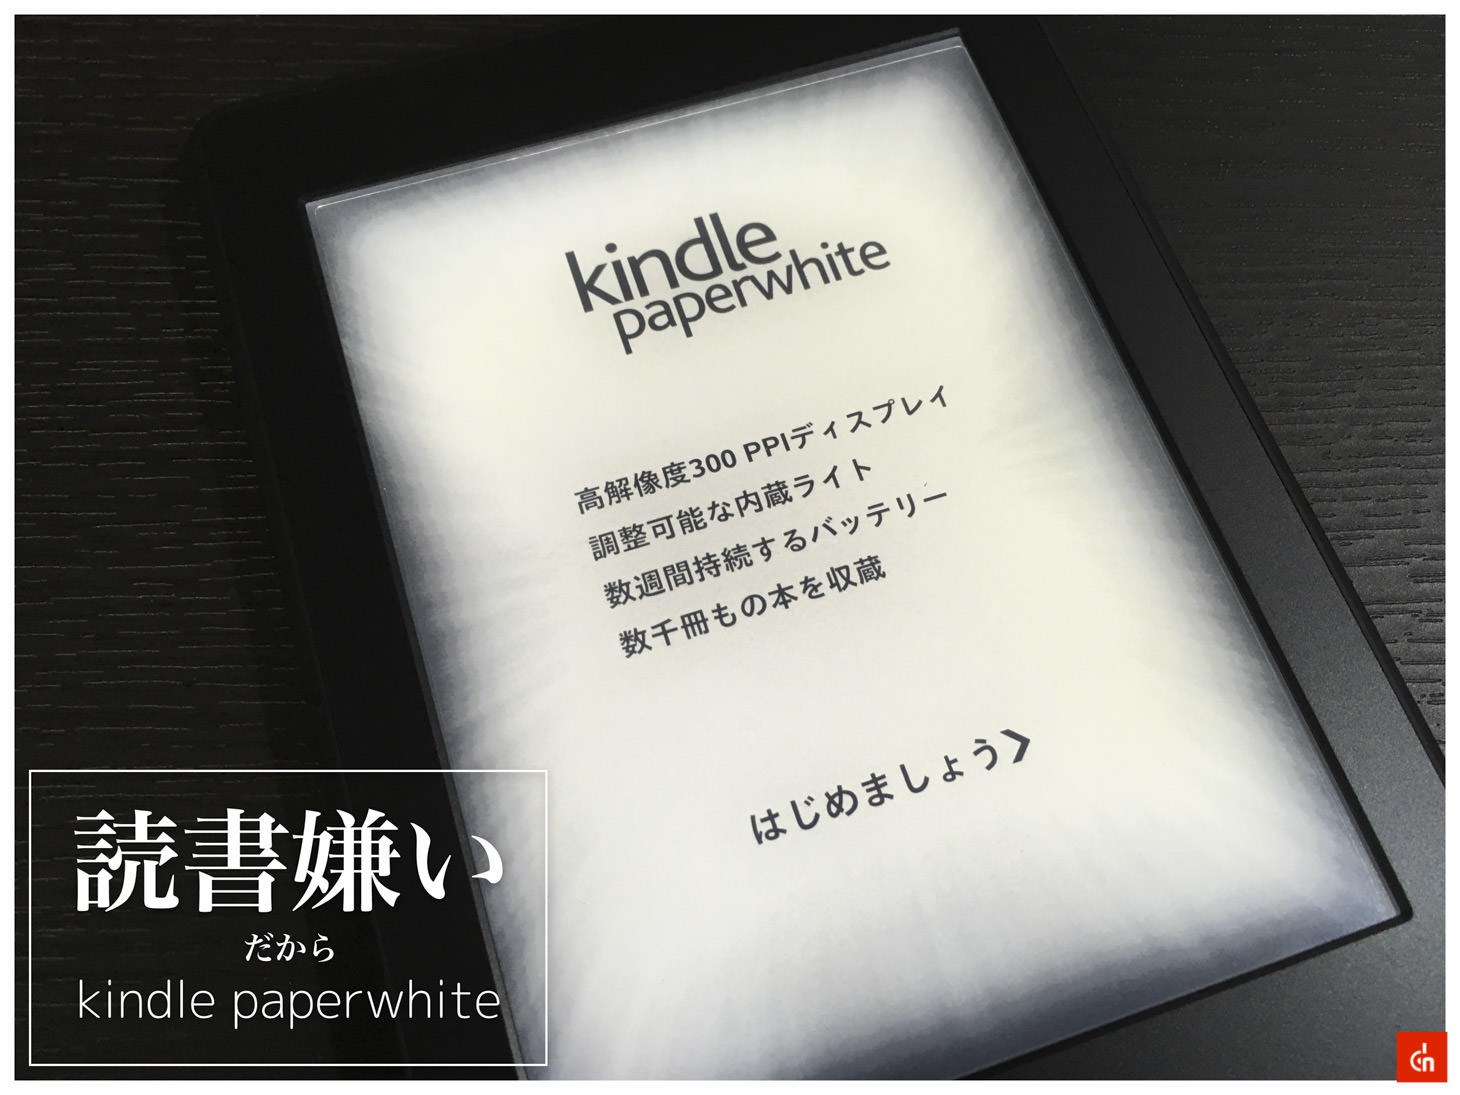 021_20160520_kindle-paperwhite